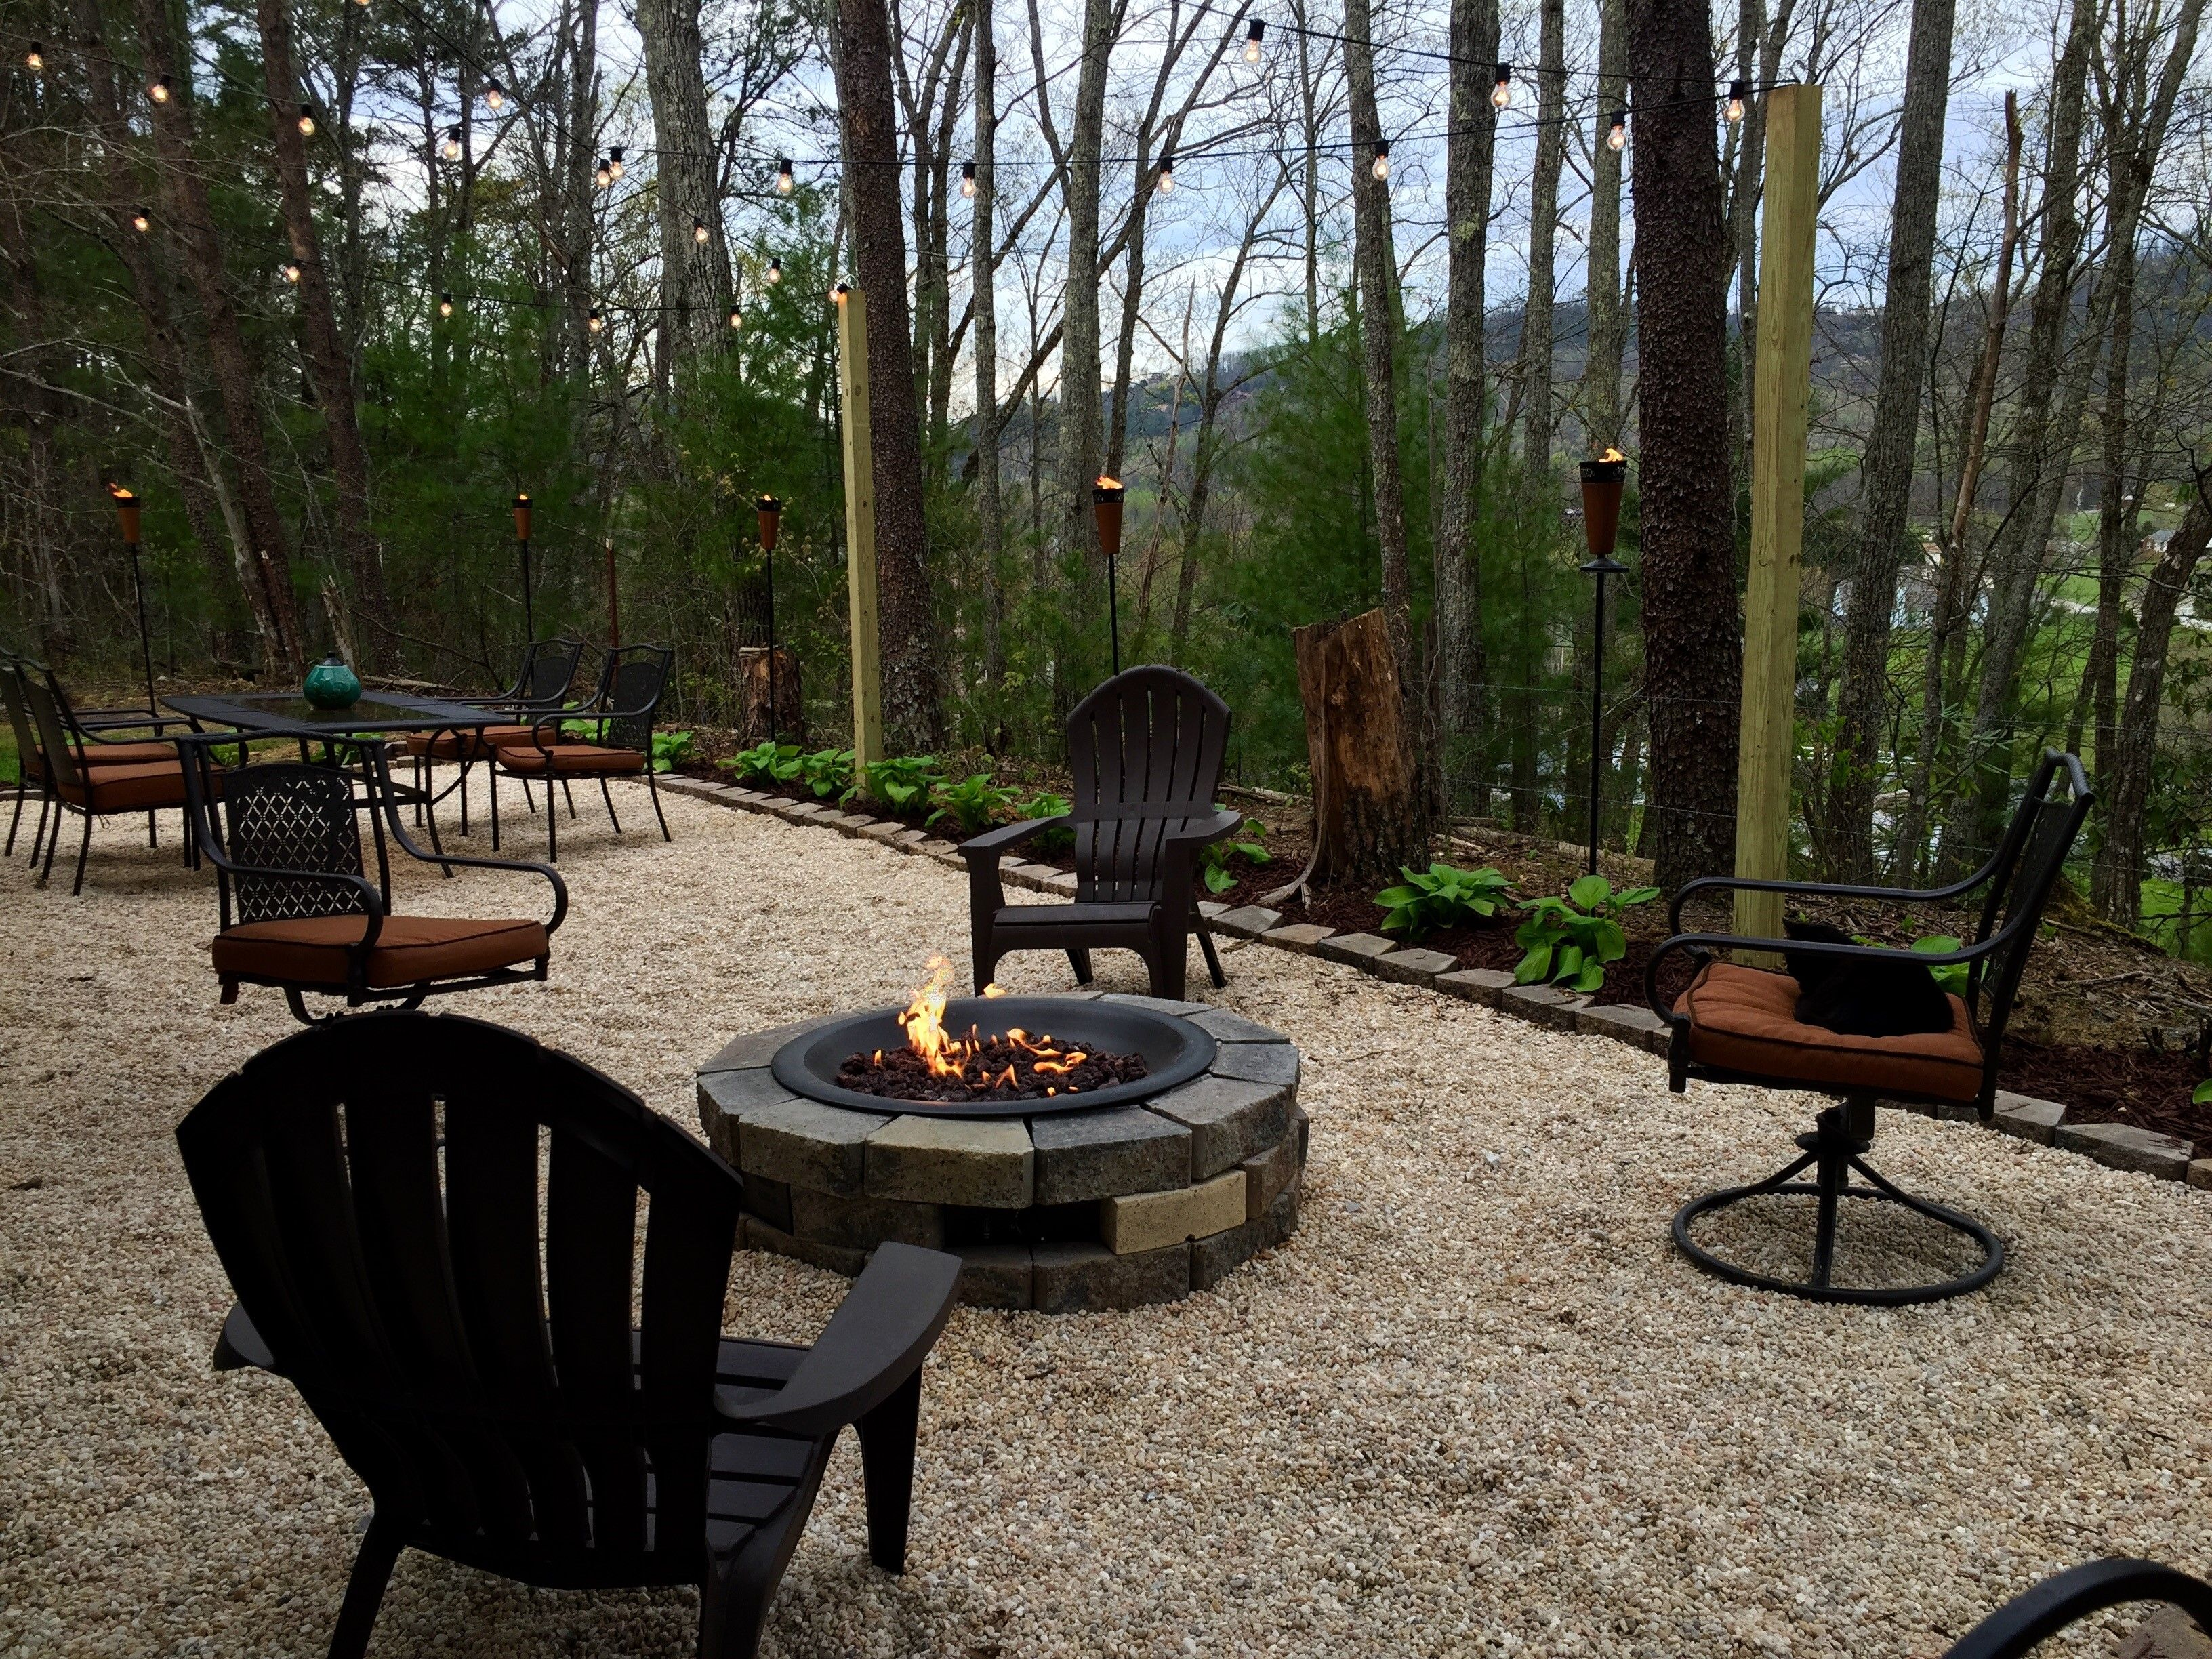 Our Patio ~ Pea gravel, Gas fire pit, cafe lights | Fire